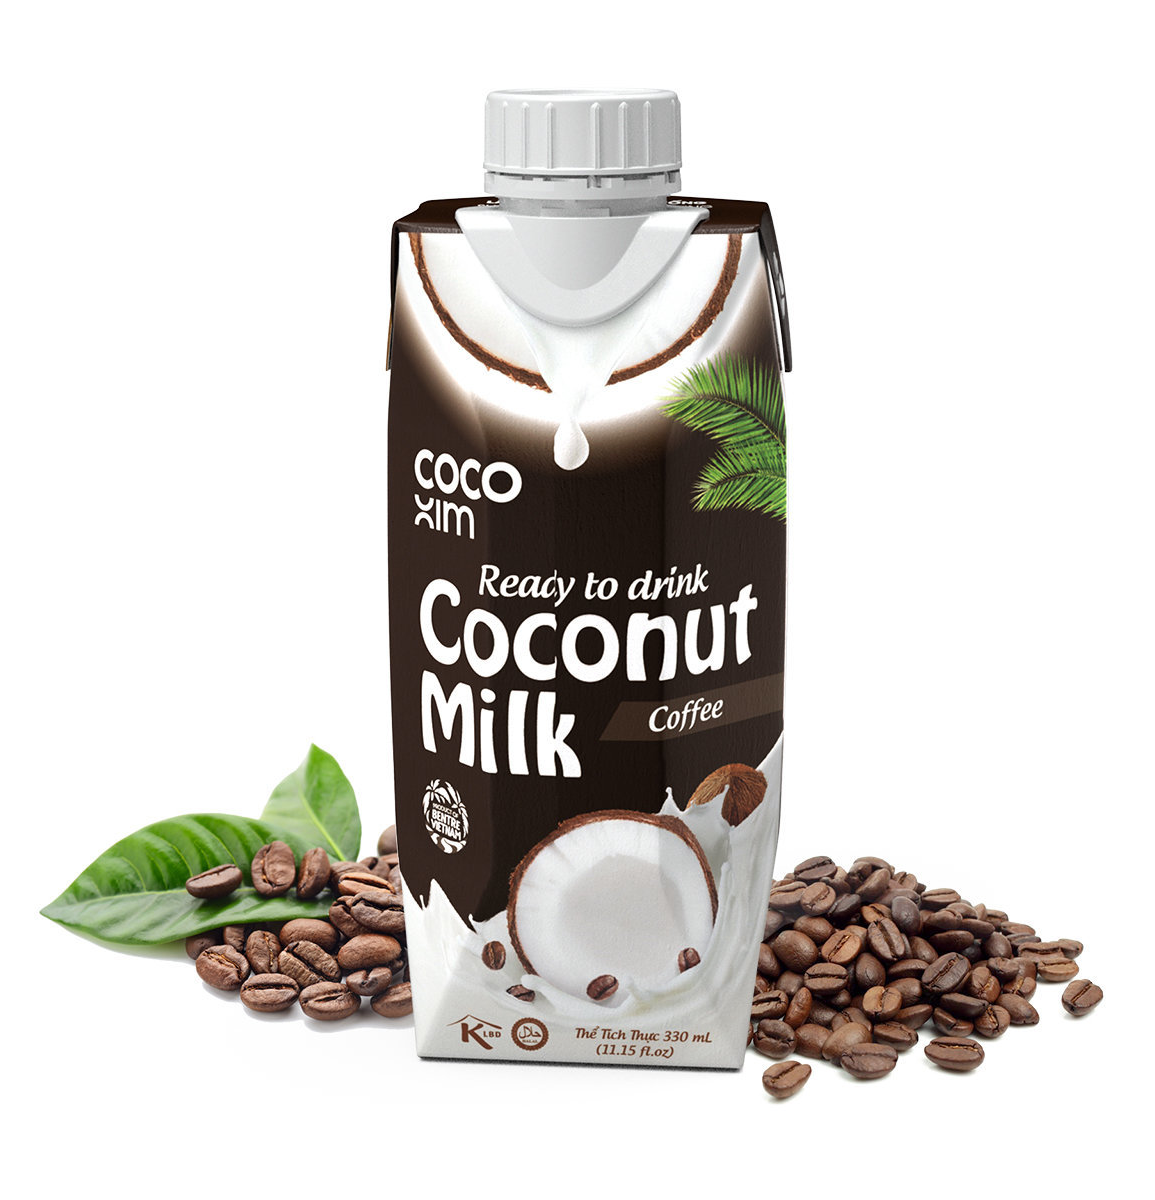 Coconut milk drink with coffee flavour